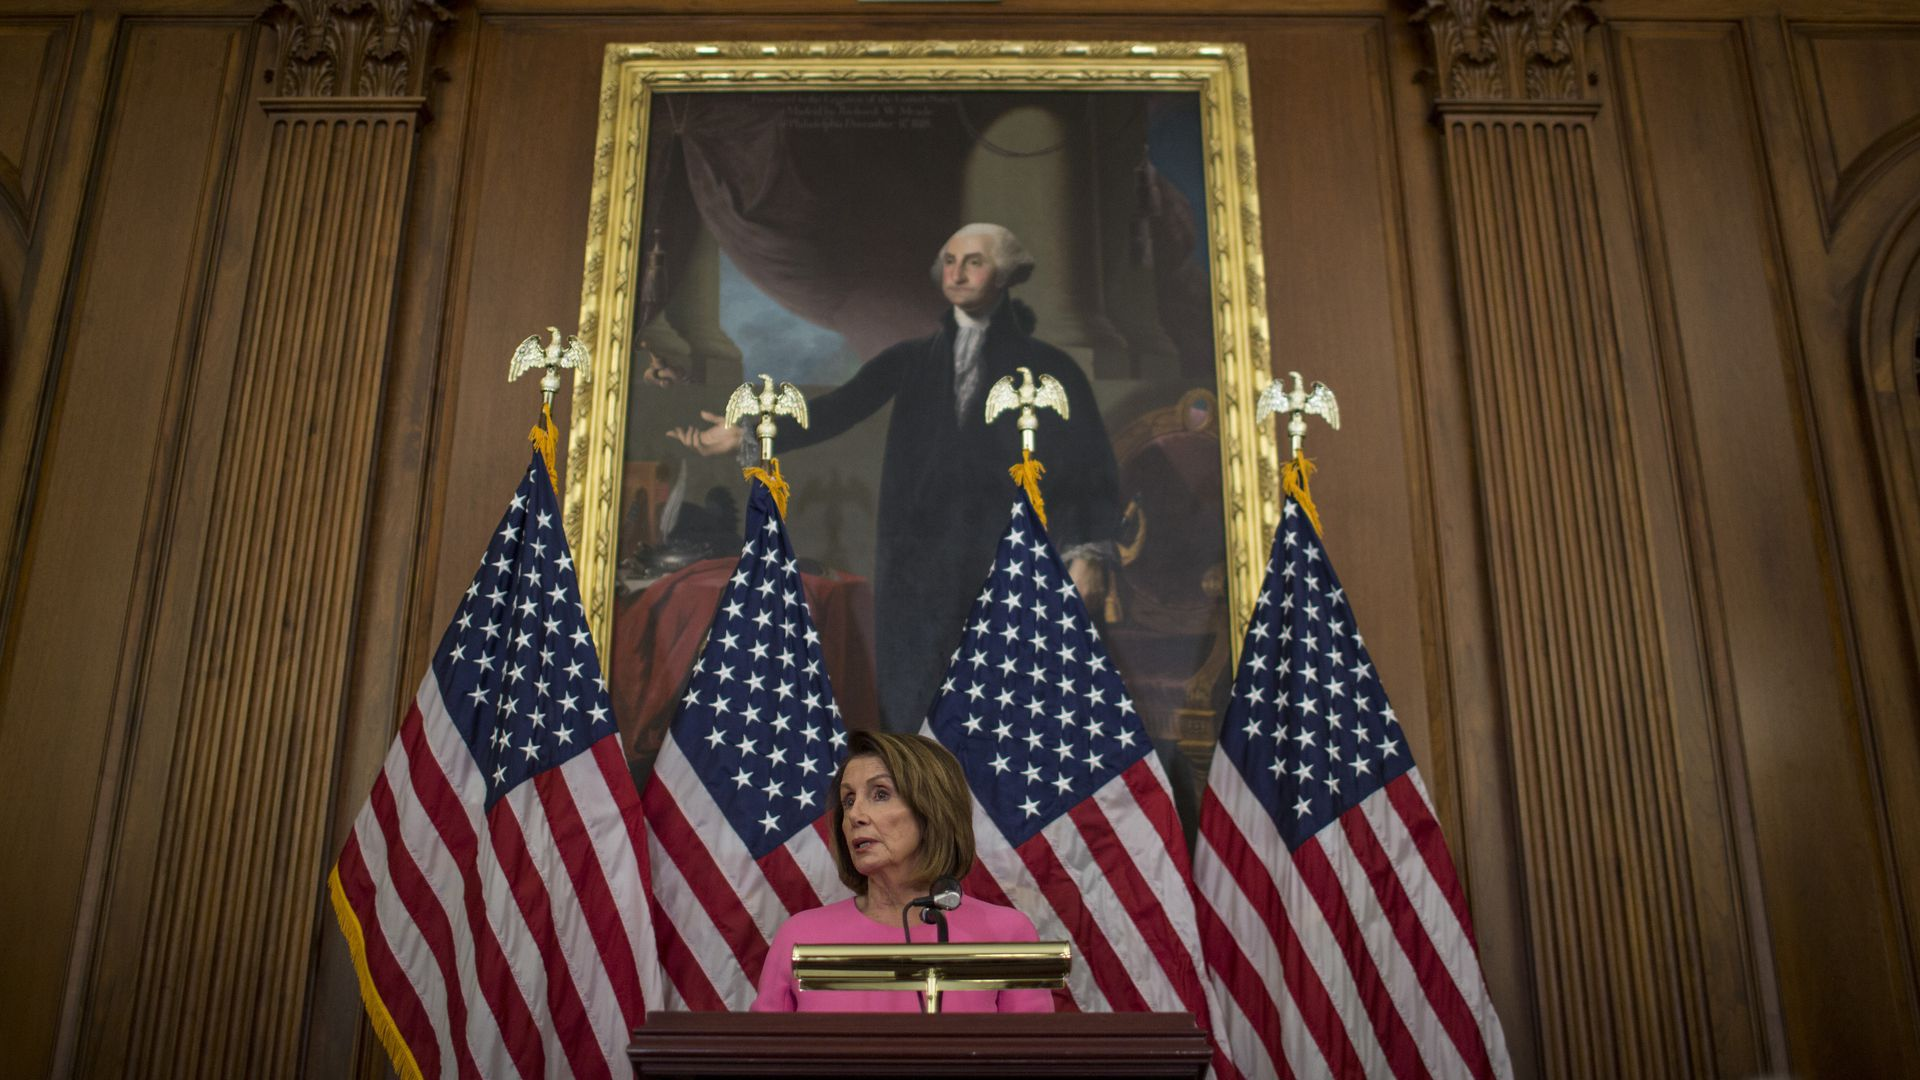 Nancy Pelosi speaks from a podium in front of American flags and a painting of George Washington